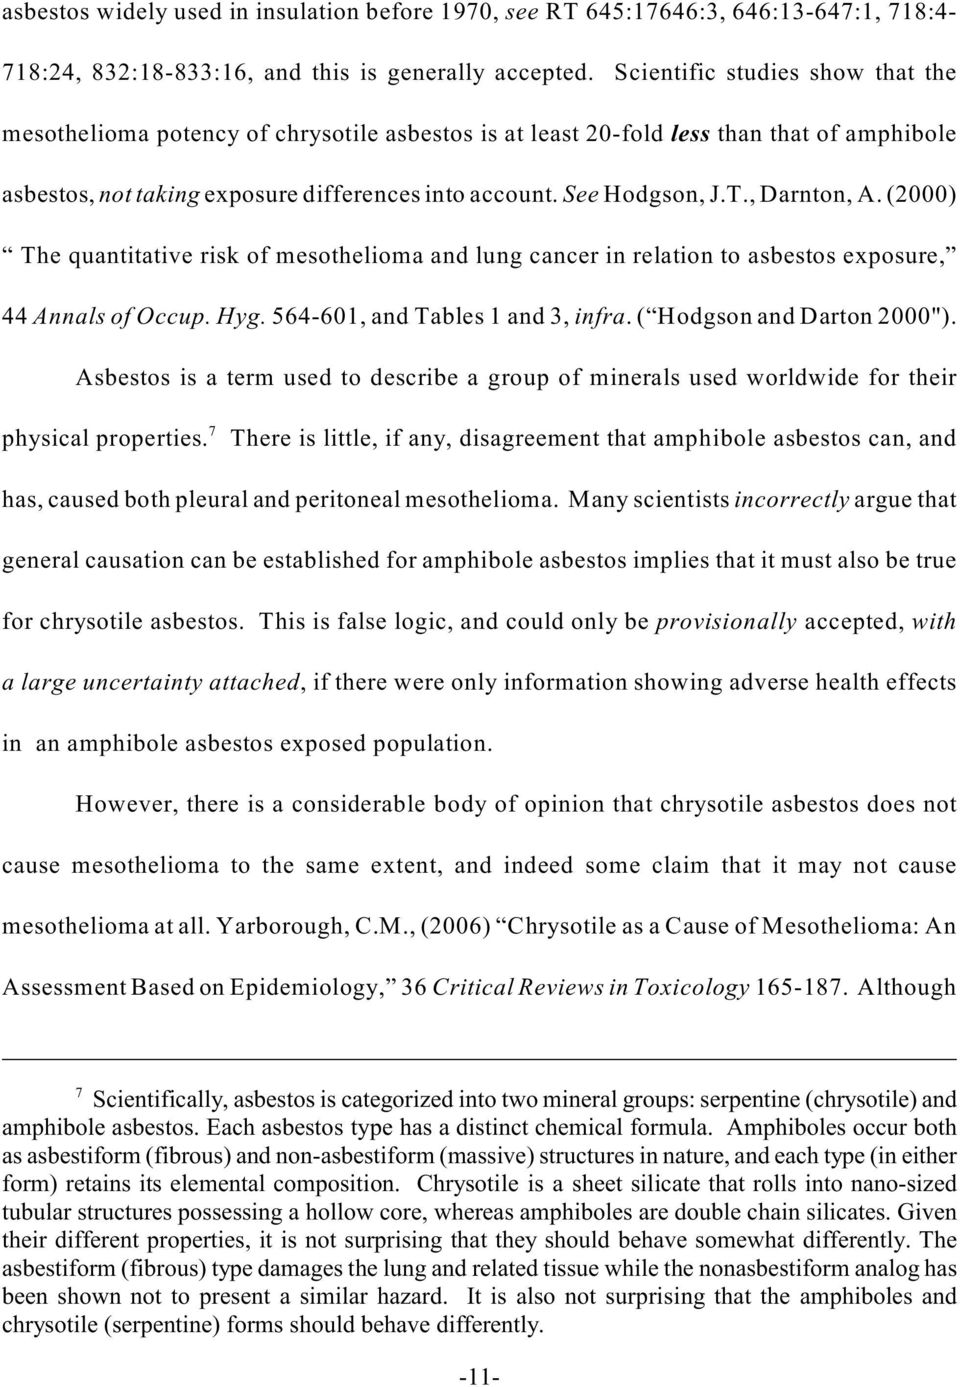 ", Darnton, A. (2000) The quantitative risk of mesothelioma and lung cancer in relation to asbestos exposure, 44 Annals of Occup. Hyg. 564-601, and Tables 1 and 3, infra. ( Hodgson and Darton 2000"")."